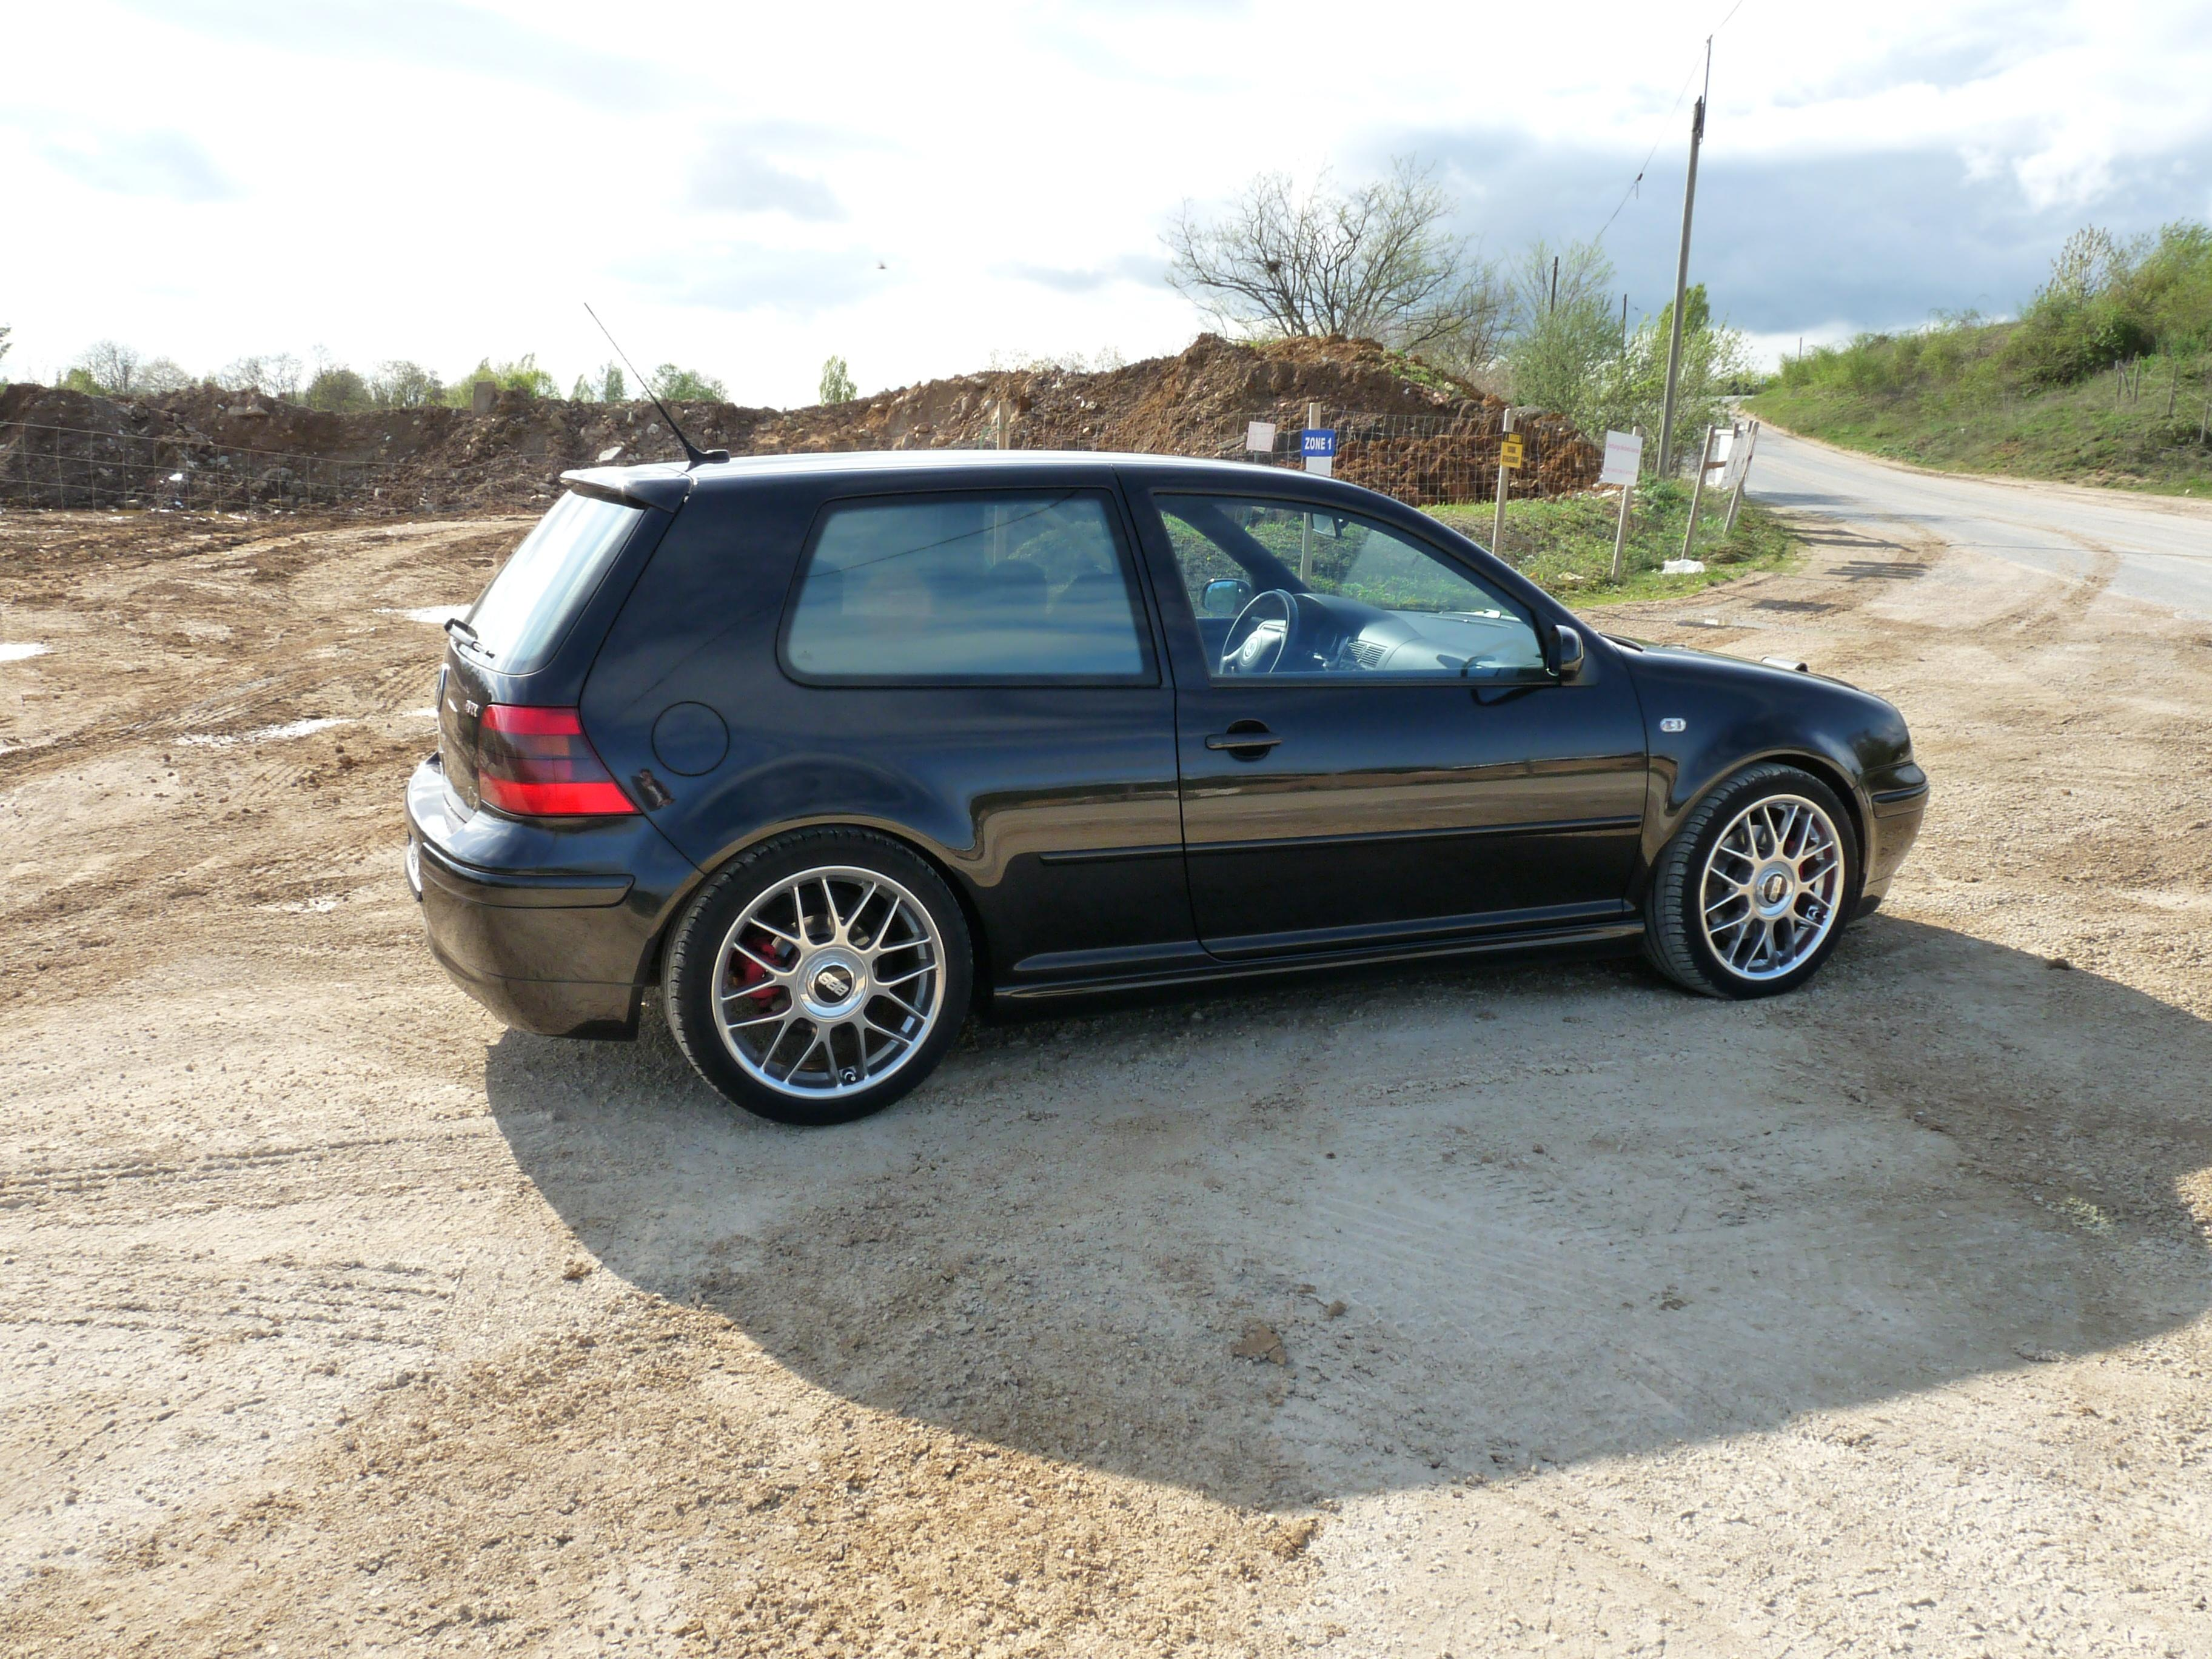 golf gti mk4 25th 2002 by cyril86 a vendre garage des golf iv 1 8 1 8 20v 1 8 t page. Black Bedroom Furniture Sets. Home Design Ideas